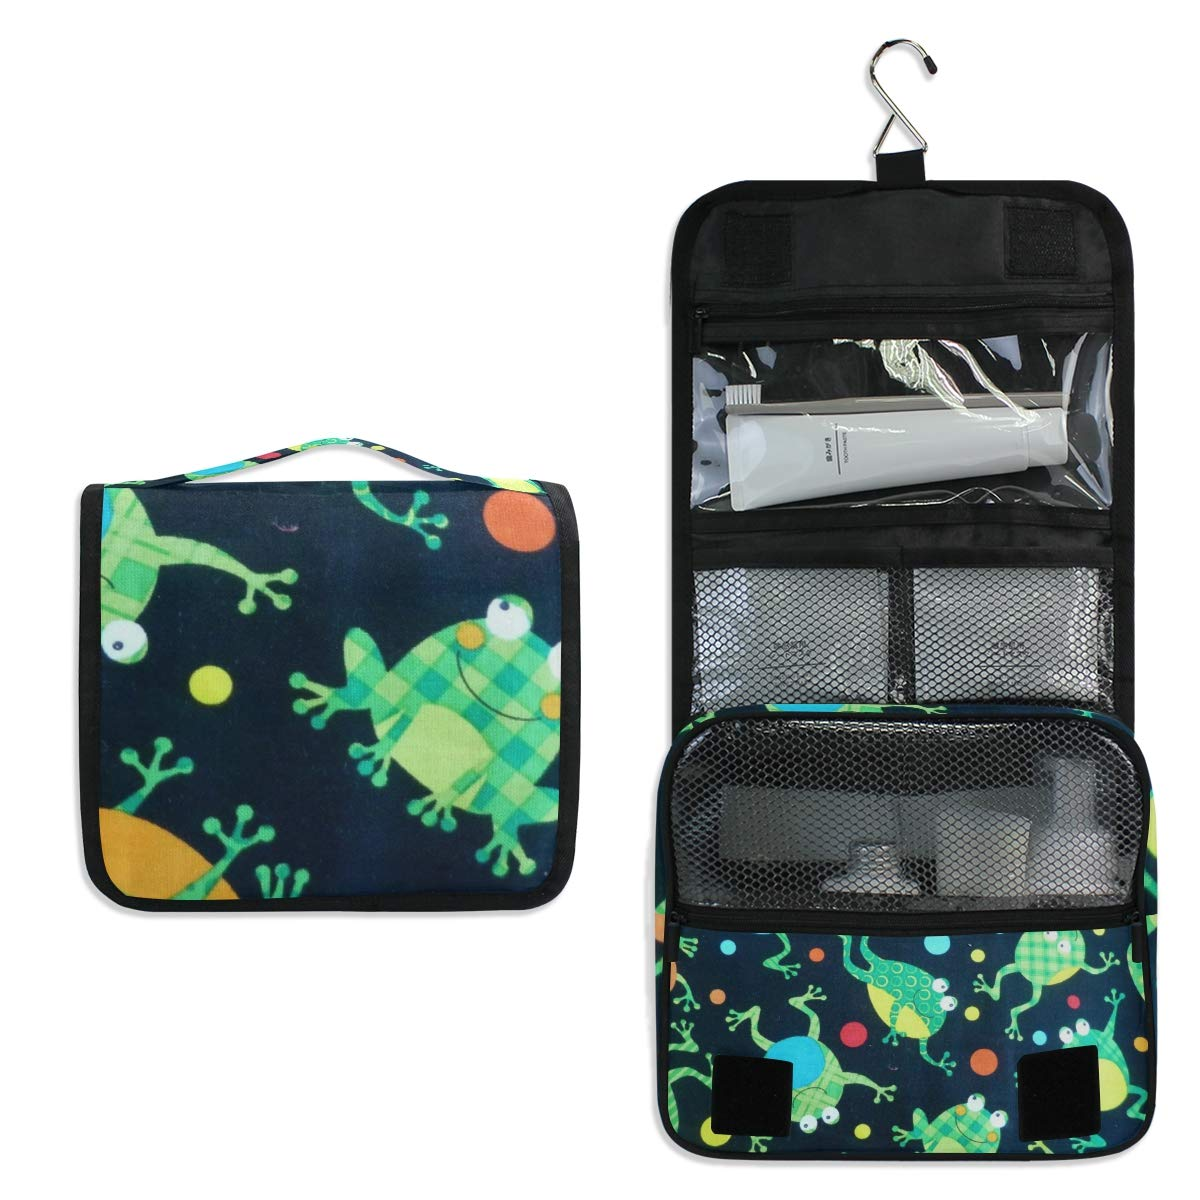 Hanging Toiletry Bag Cartoon Frog Waterproof Wash Bag Makeup Organizer for Bathroom Men Women